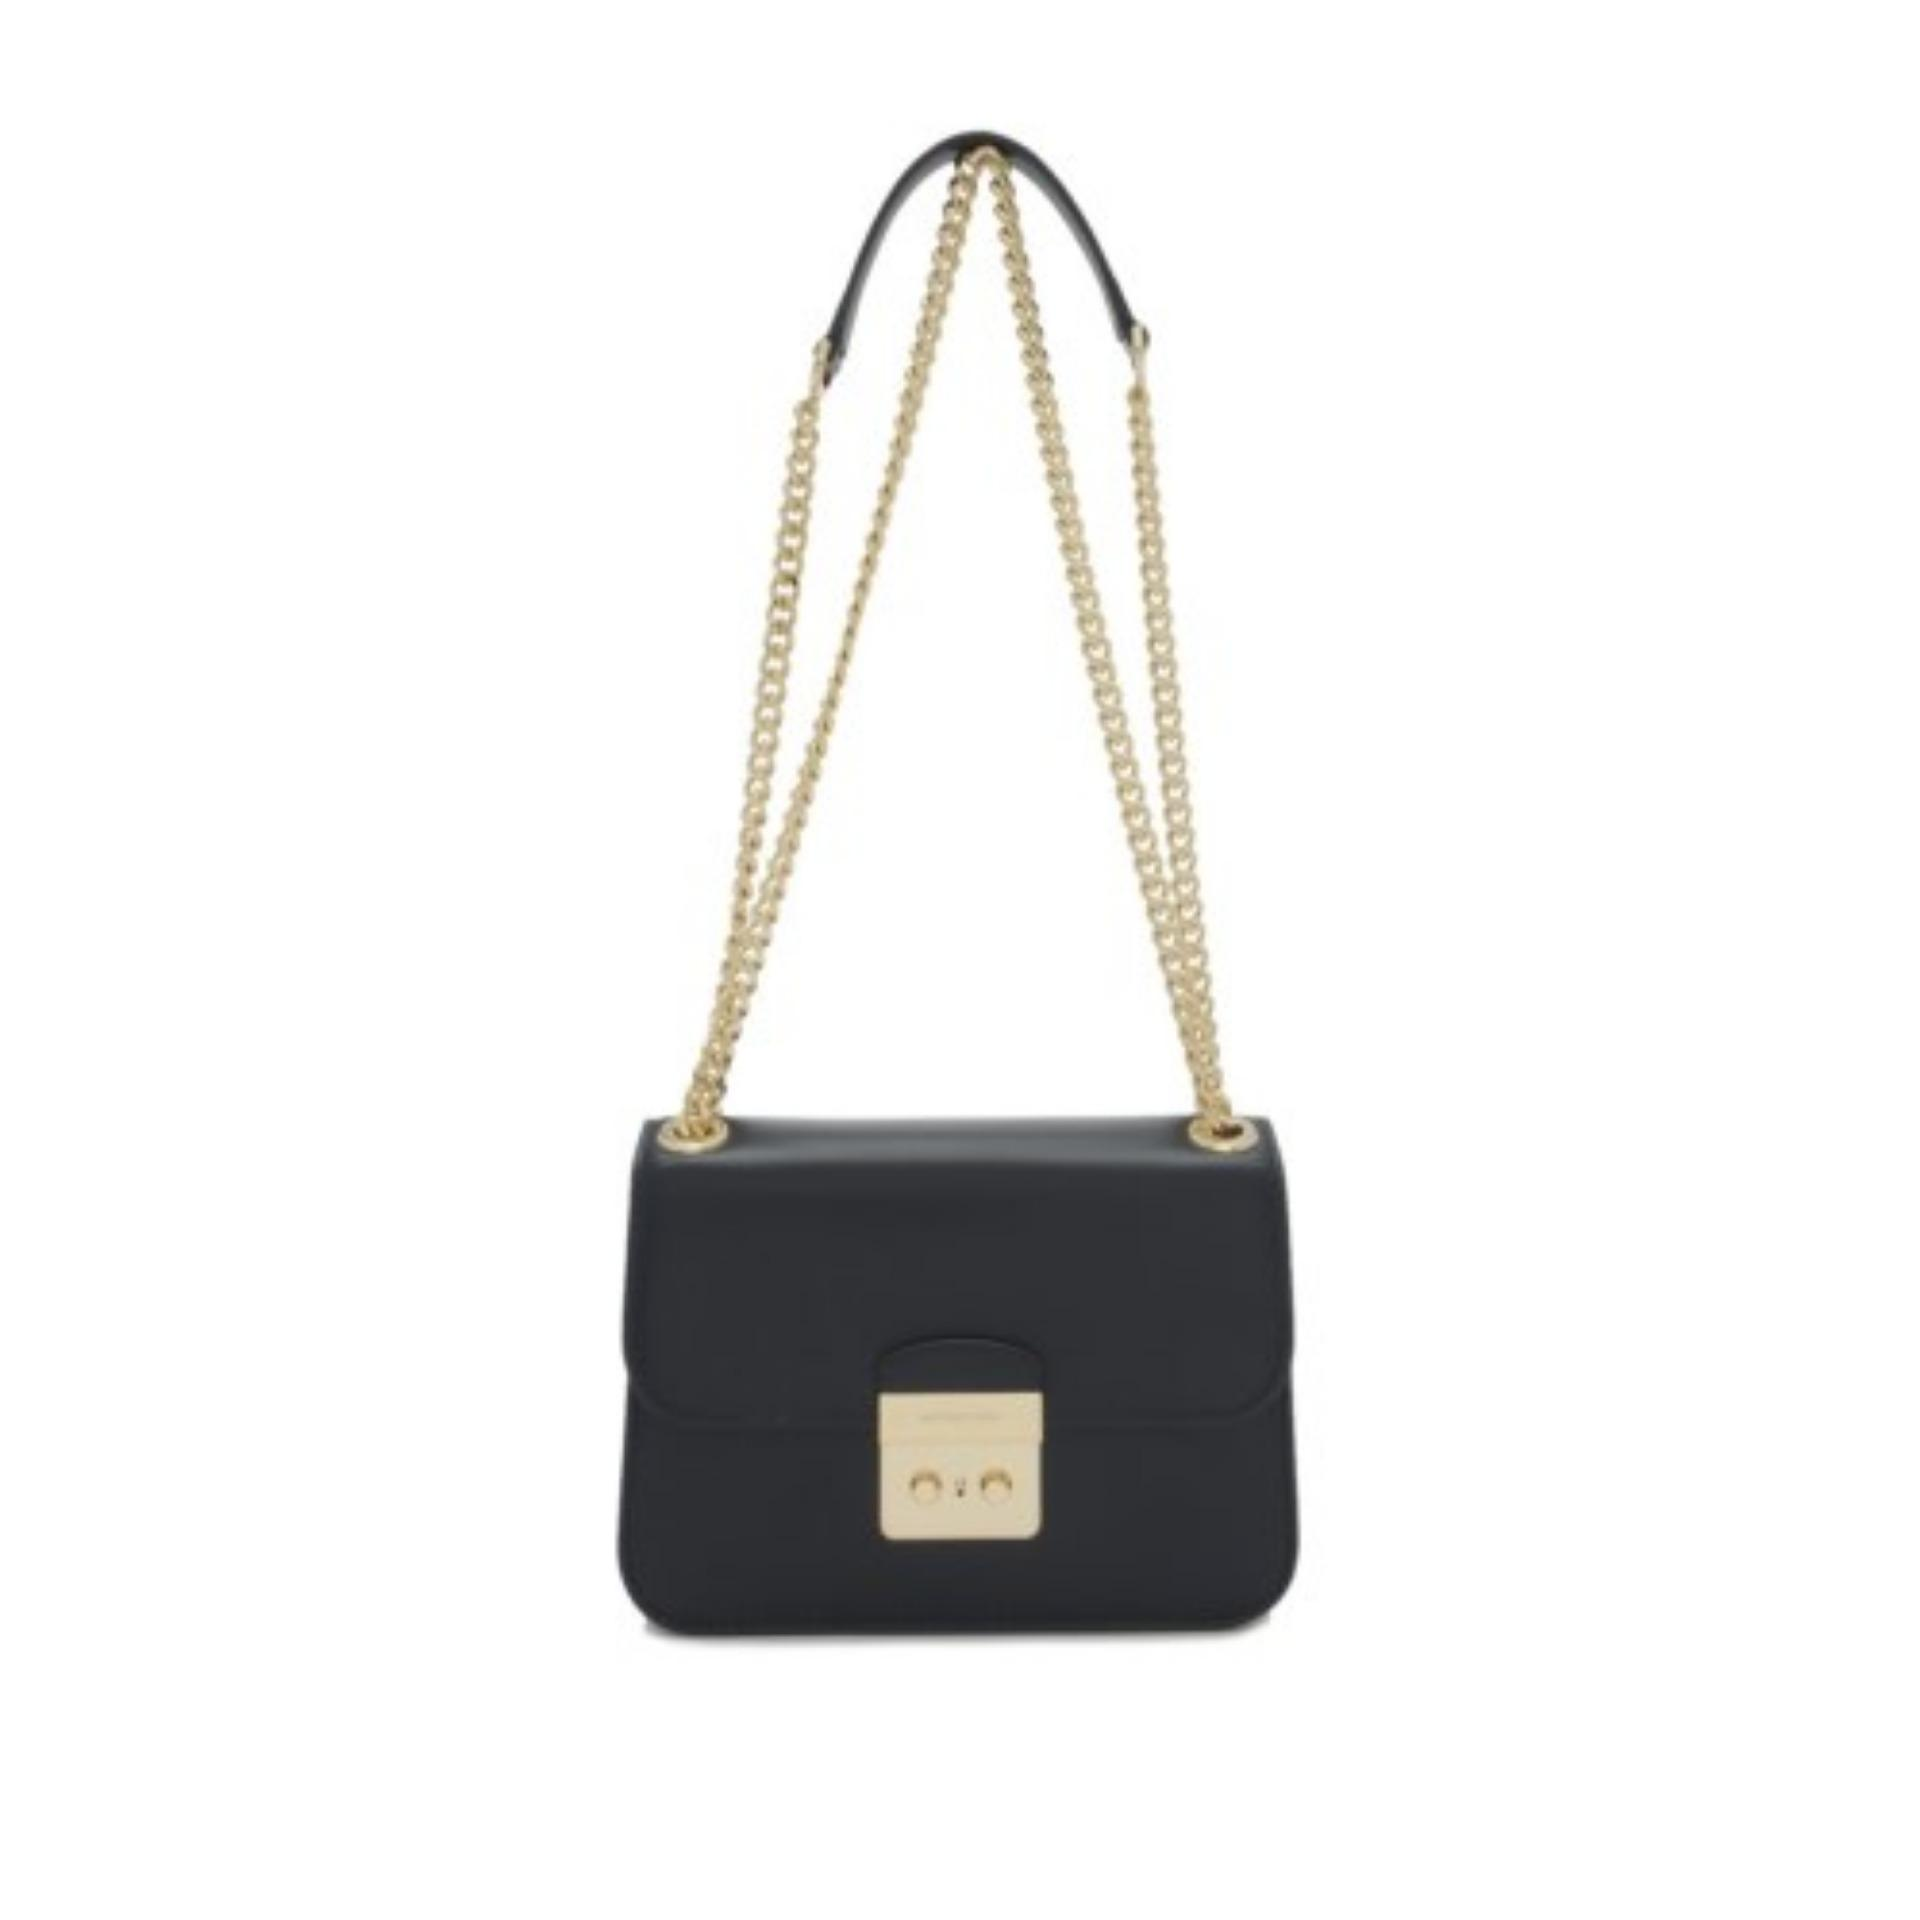 20e072662e46 ... coupon code for michael kors sloan editor medium chain shoulder bag  admiral 30h6gs9l2ladmiral 012c4 29ffb